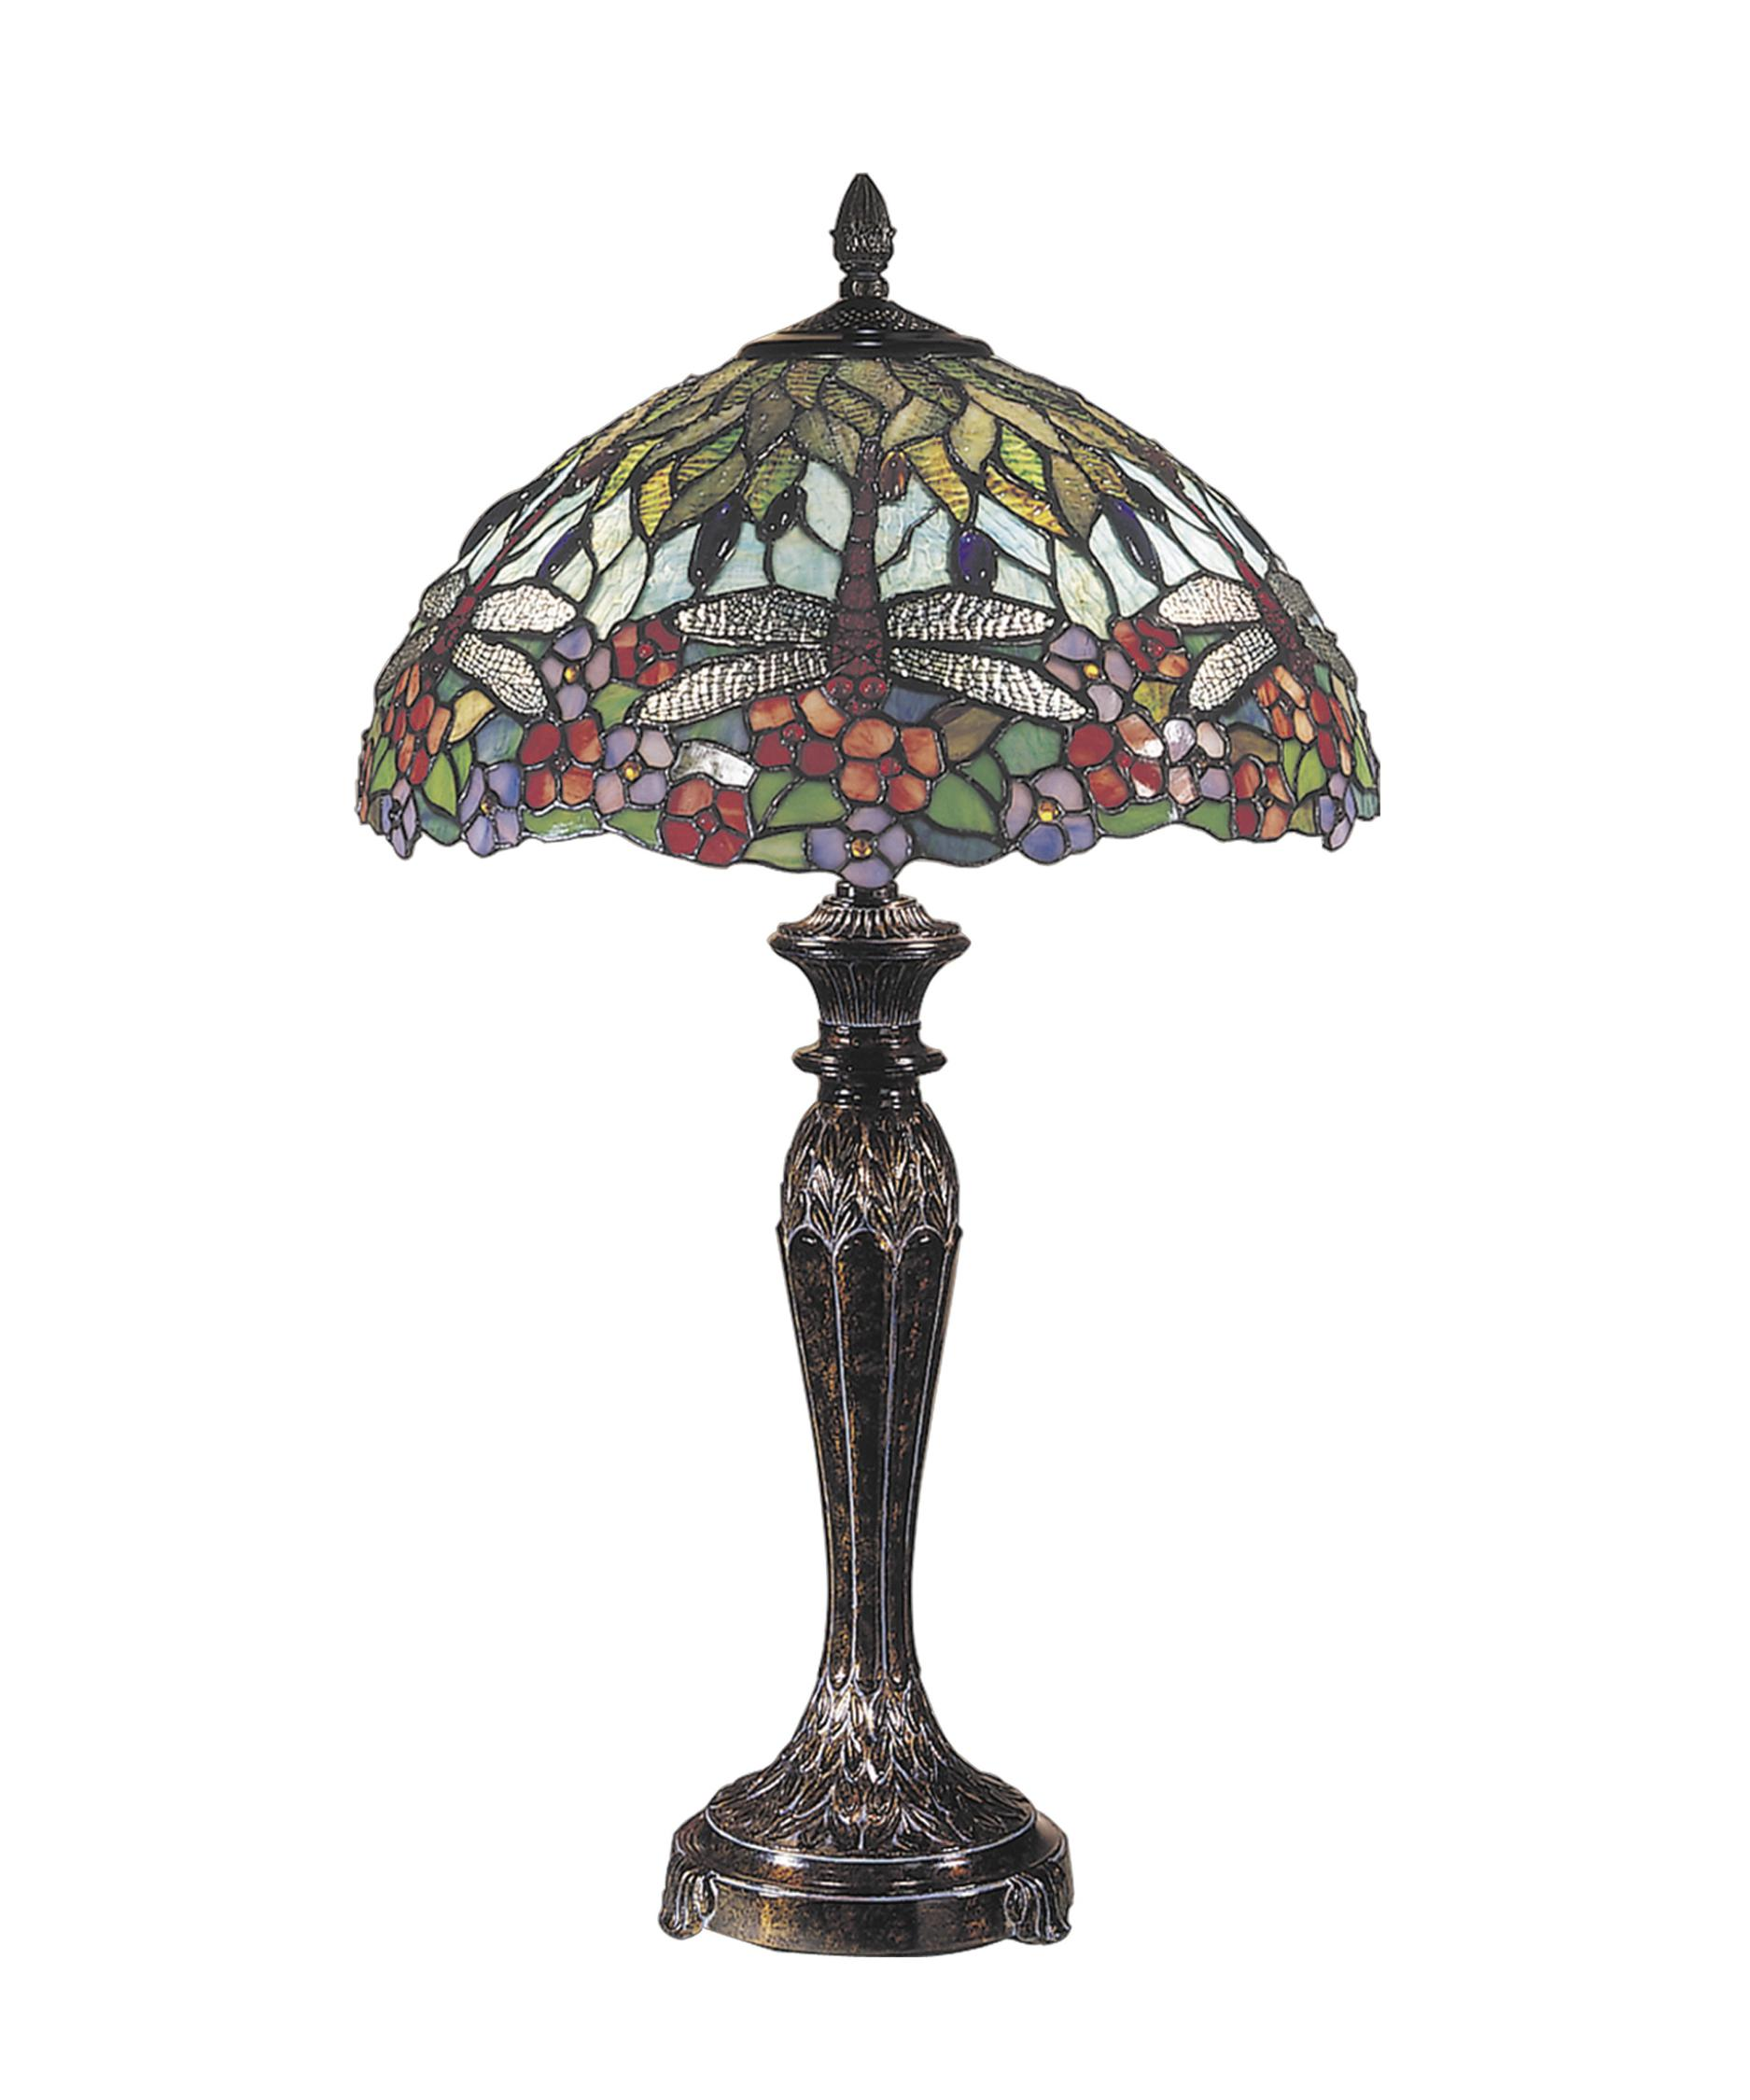 Dale Tiffany Dragonfly 29 Inch High Table Lamp – Dragonfly Desk Lamp